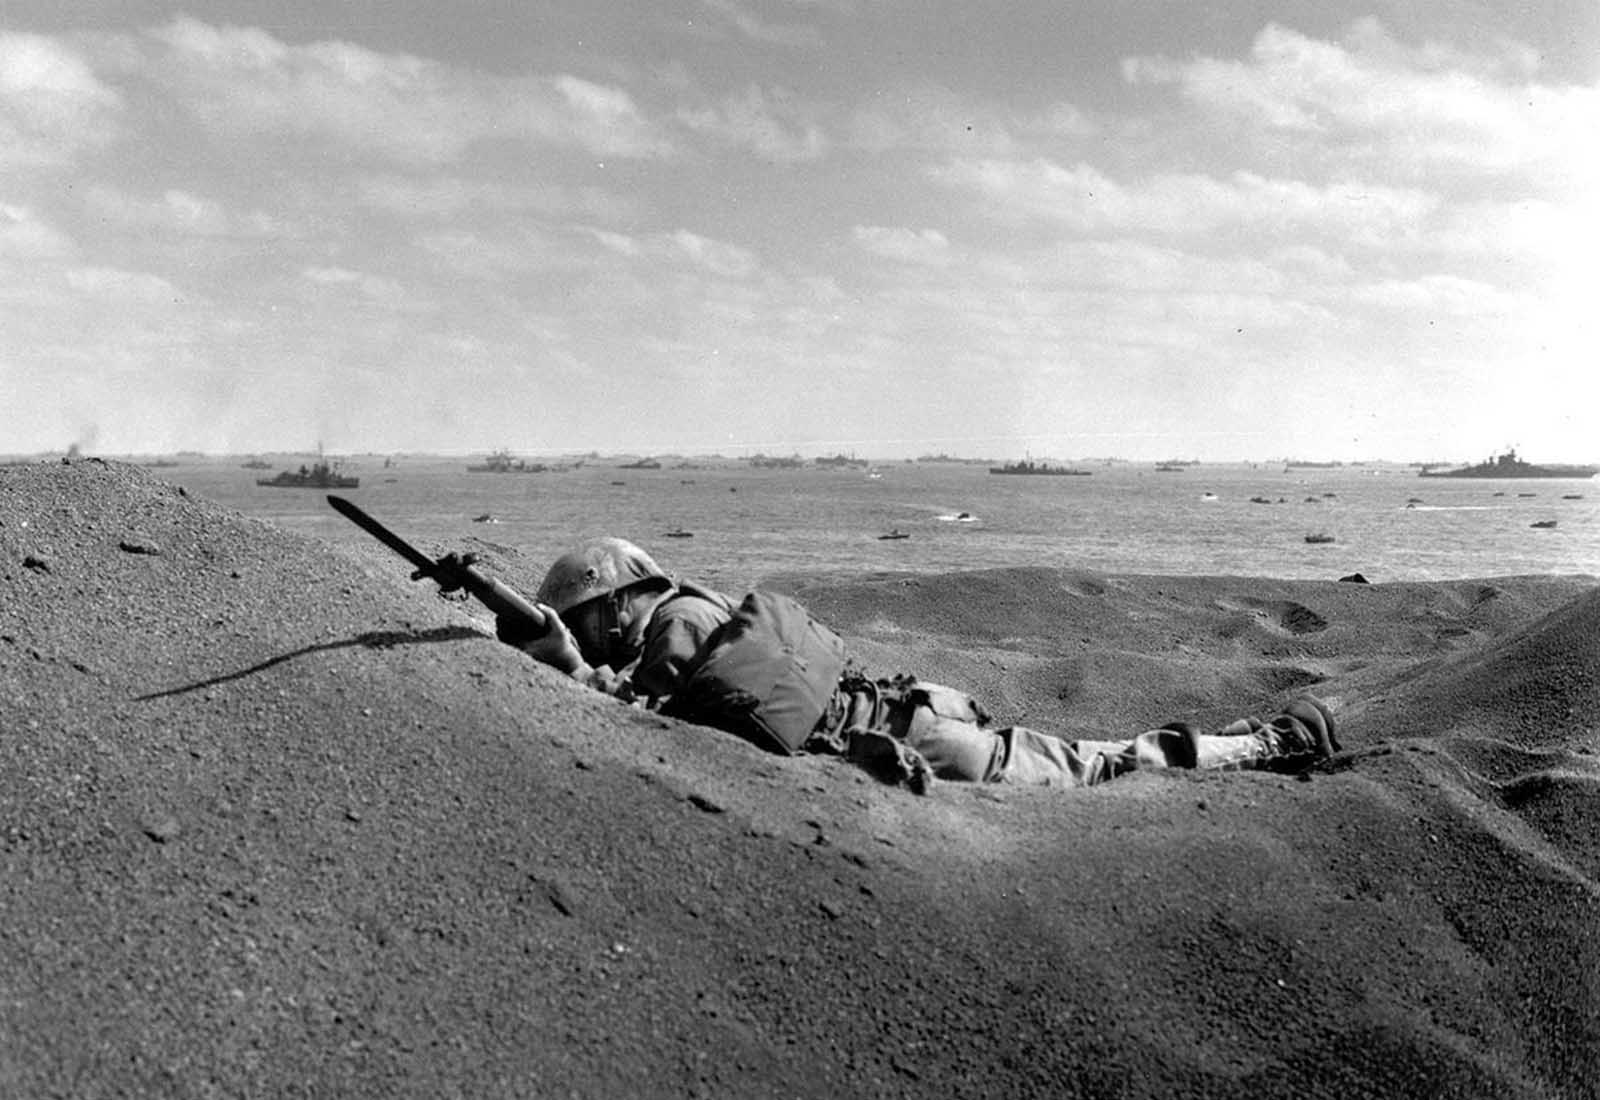 A U.S. Marine, killed by Japanese sniper fire, still holds his weapon as he lies in the black volcanic sand of Iwo Jima, on February 19, 1945, during the initial invasion on the island. In the background are the battleships of the U.S. fleet that made up the invasion task force.